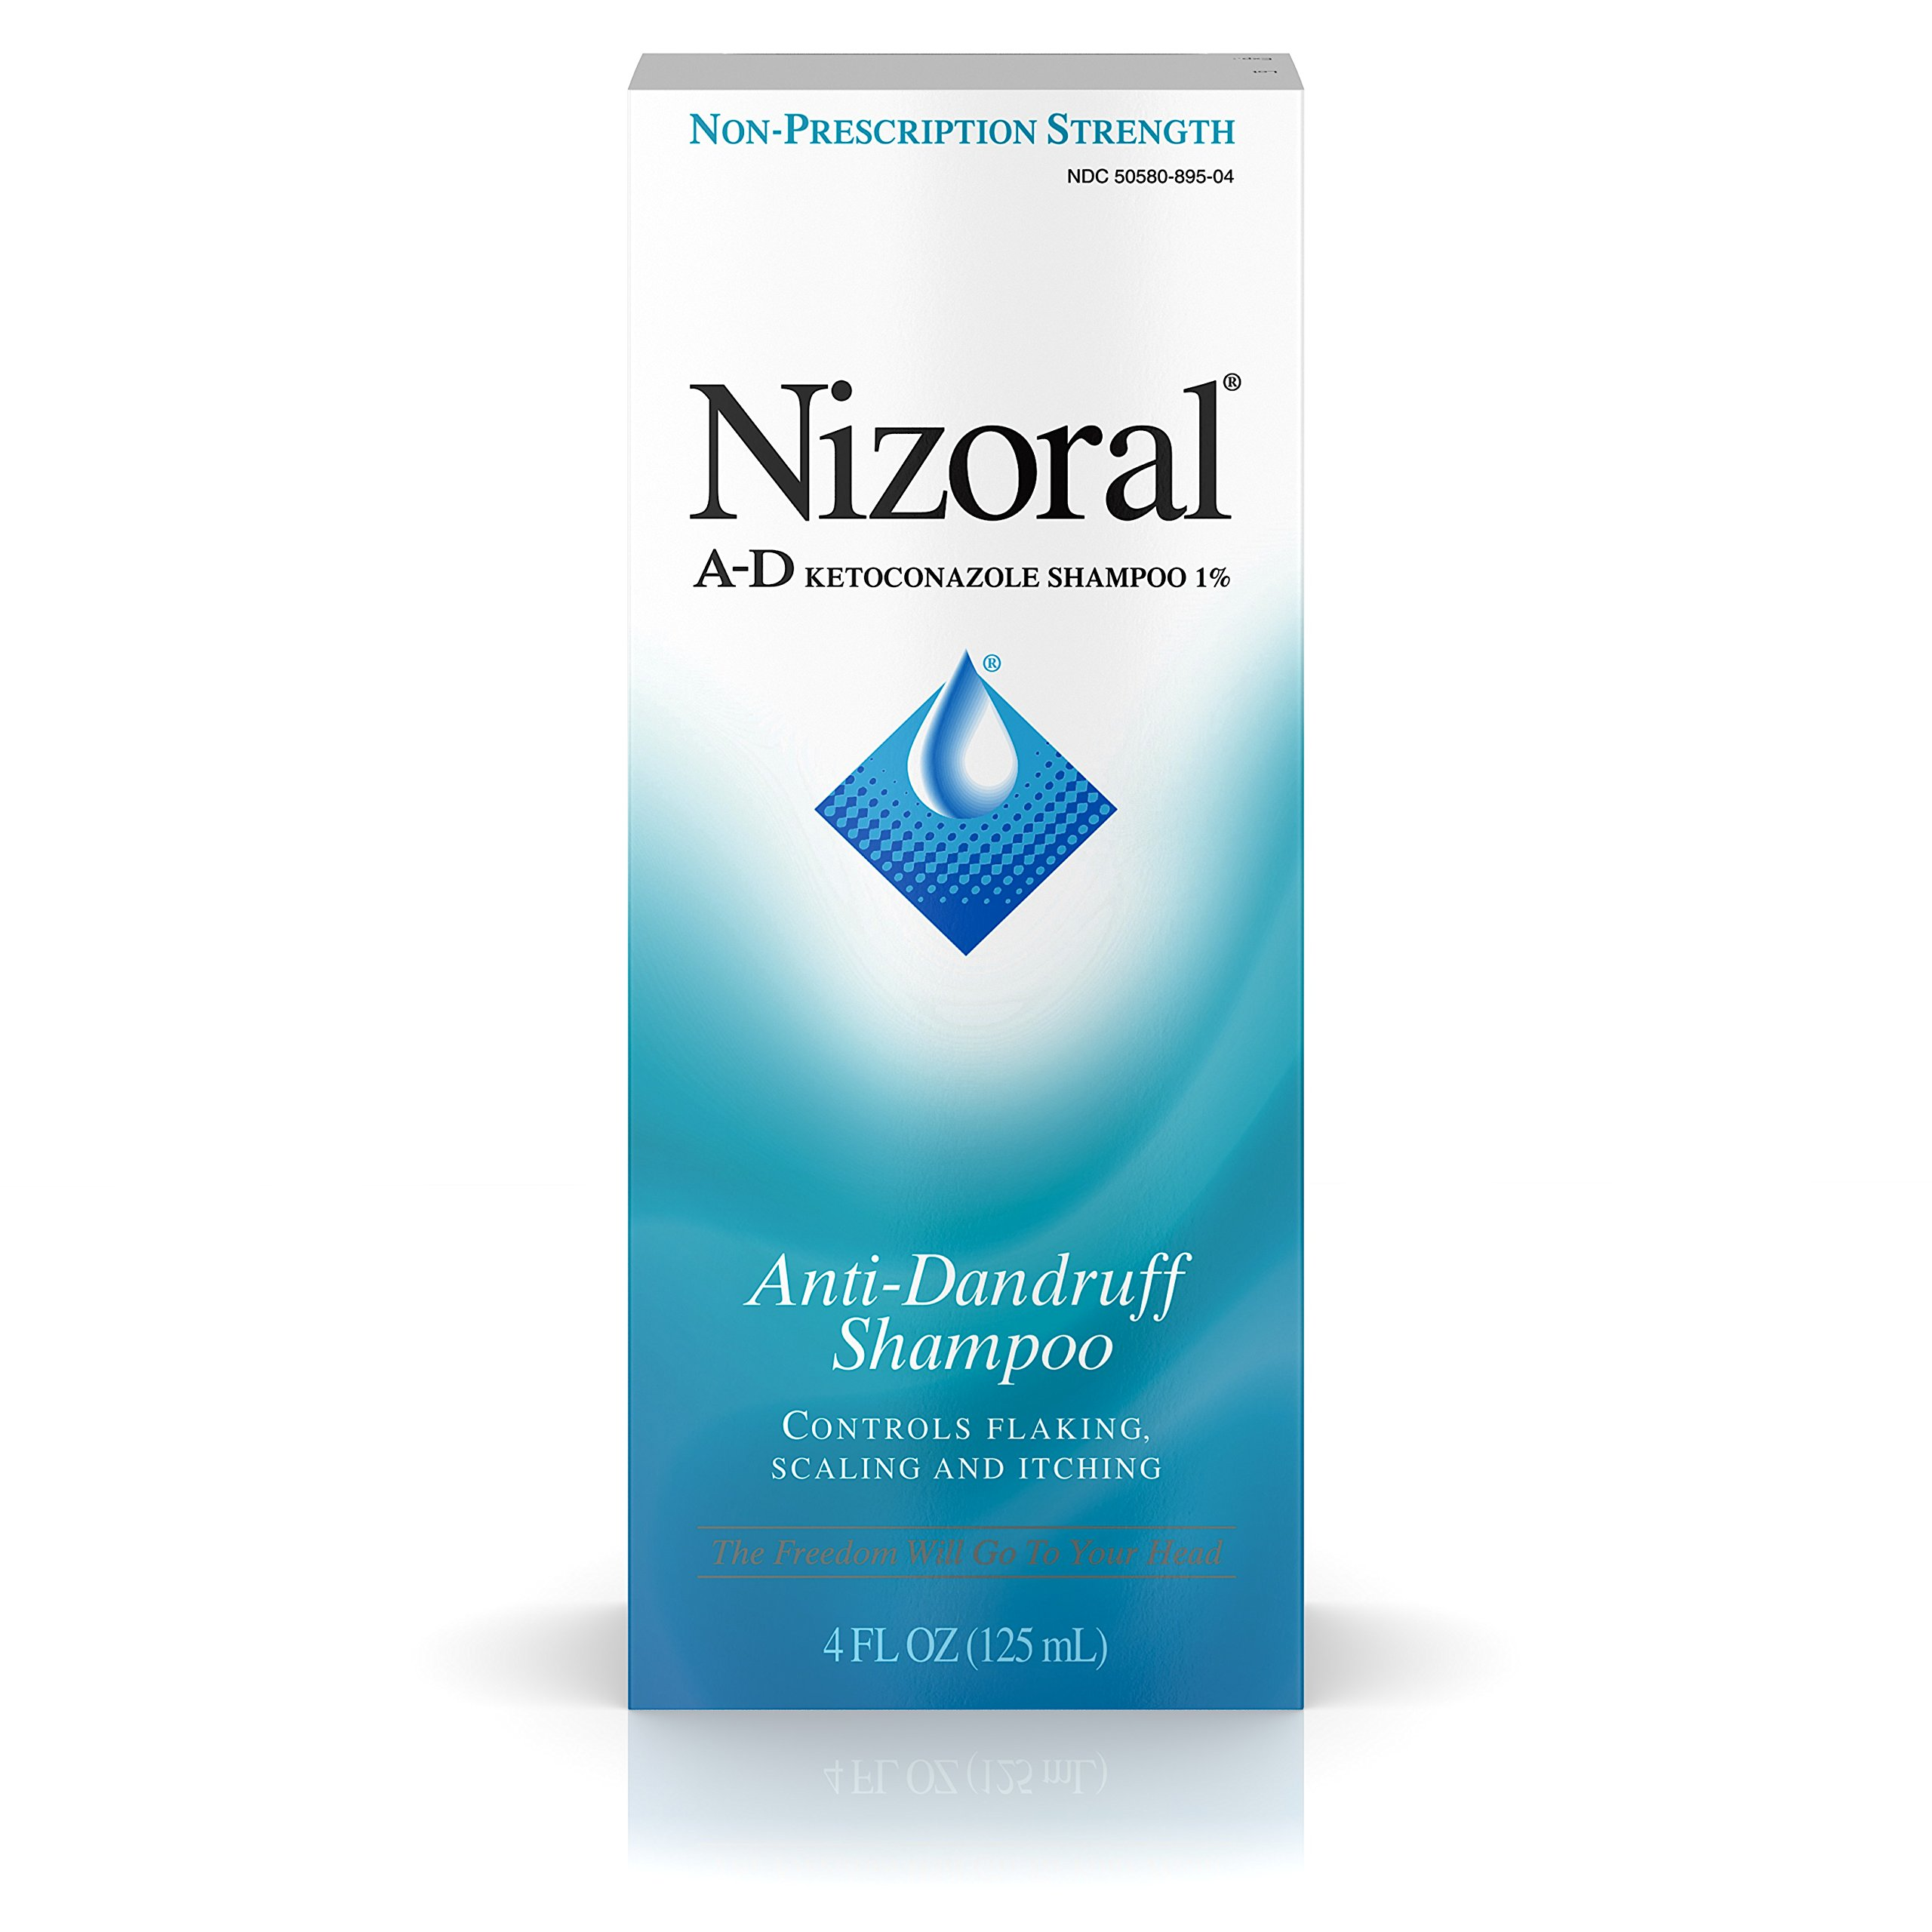 Nizoral A-D Anti-Dandruff Shampoo 4 Fl. Oz Itchy Scalp Dandruff Treatment w/ Ketoconazole 1%